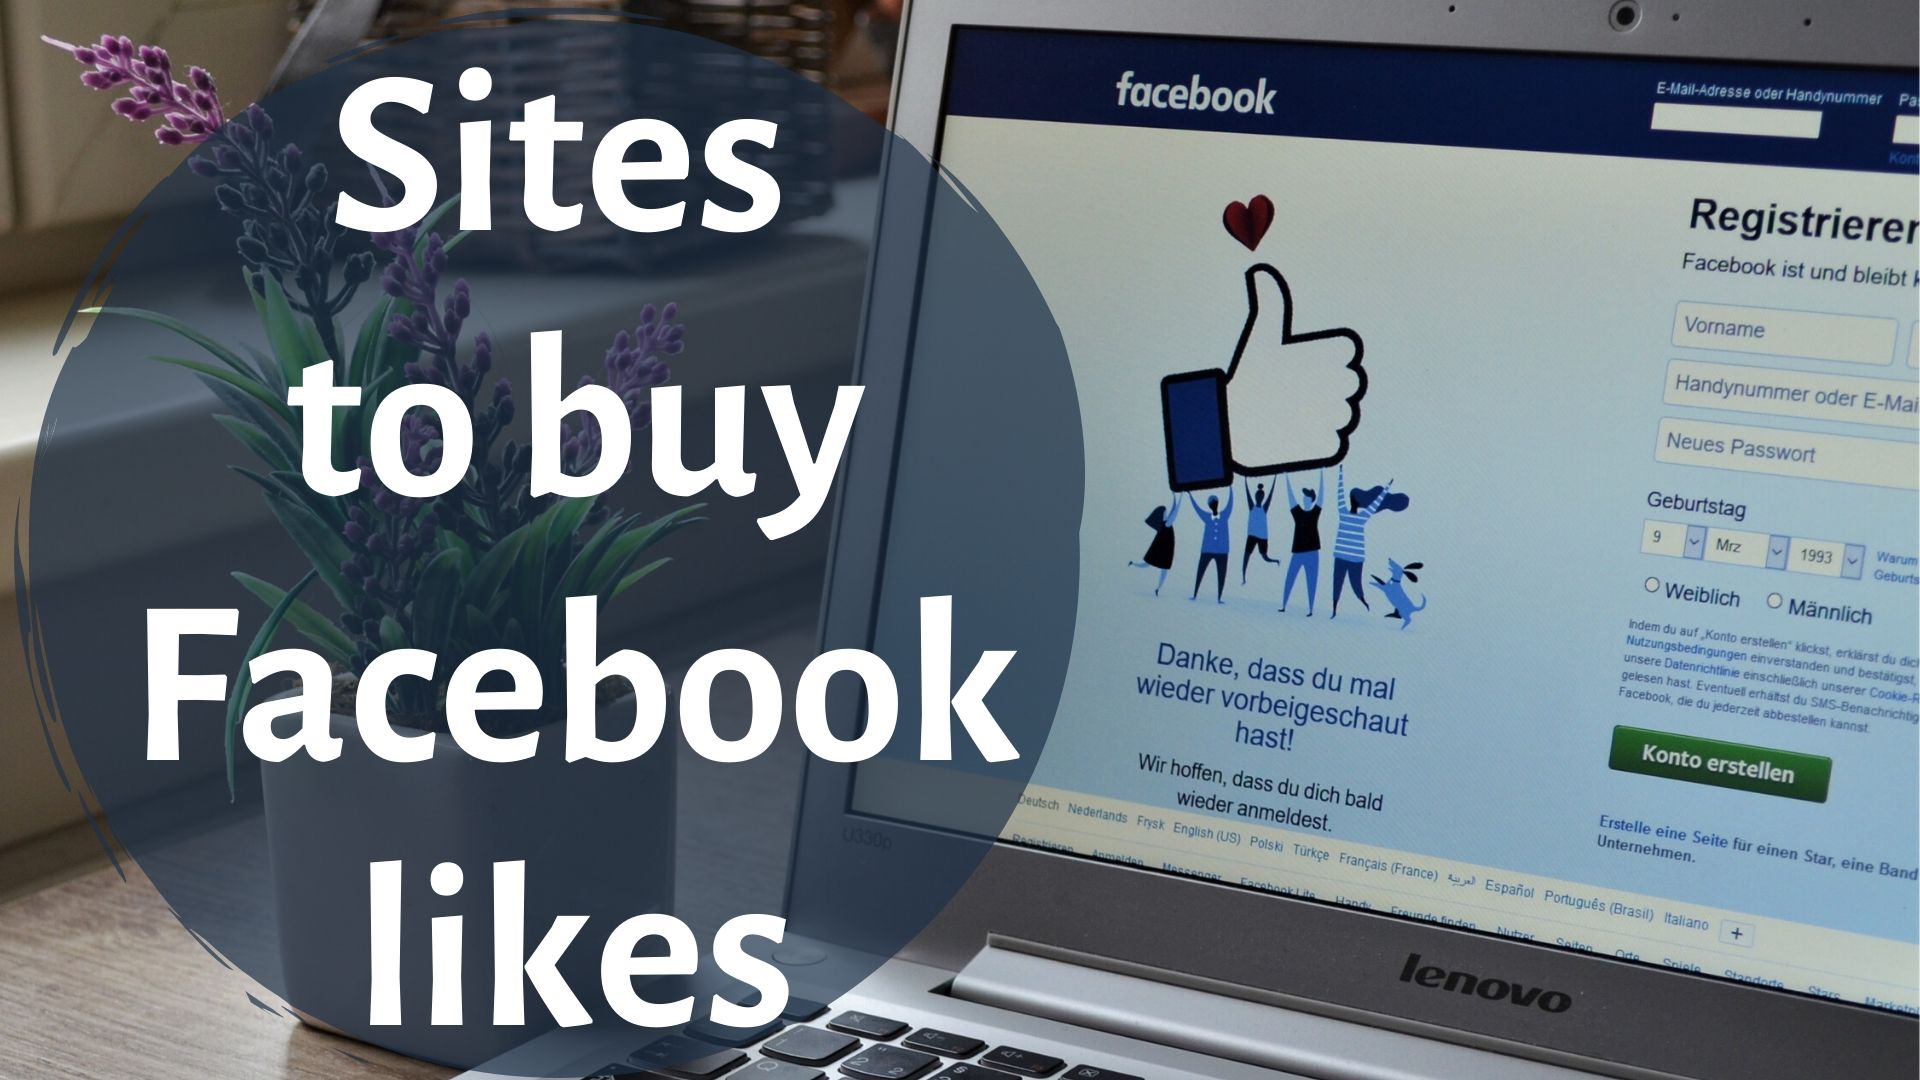 Just how does face-book benefit your firm?